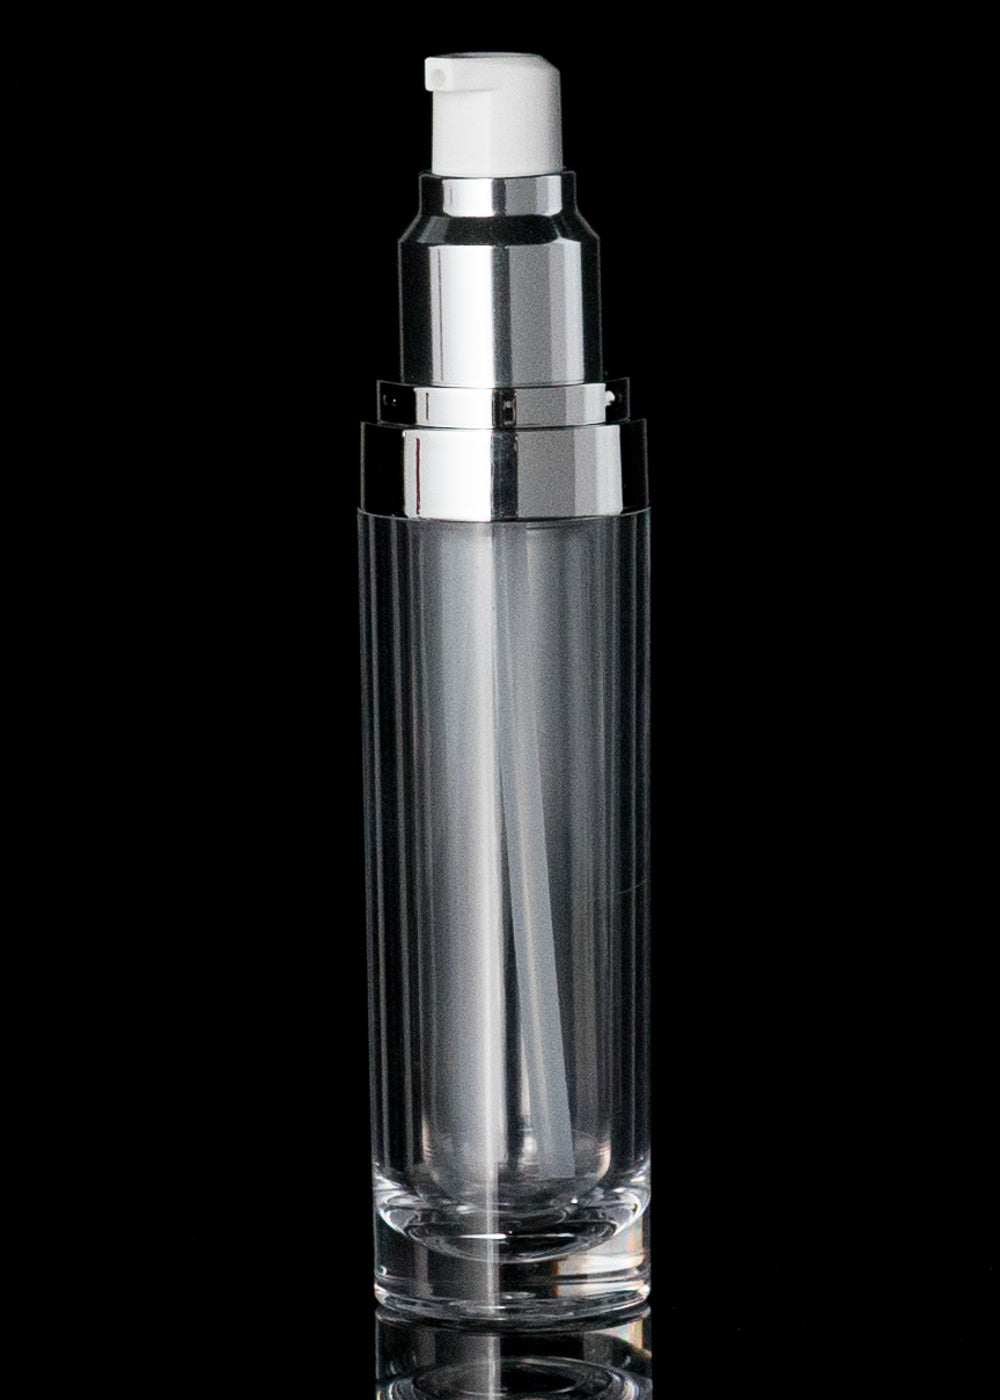 Citizen 30 ML Cosmetic Bottle with Clear Inner Bottle - Cosmetic Packaging Now